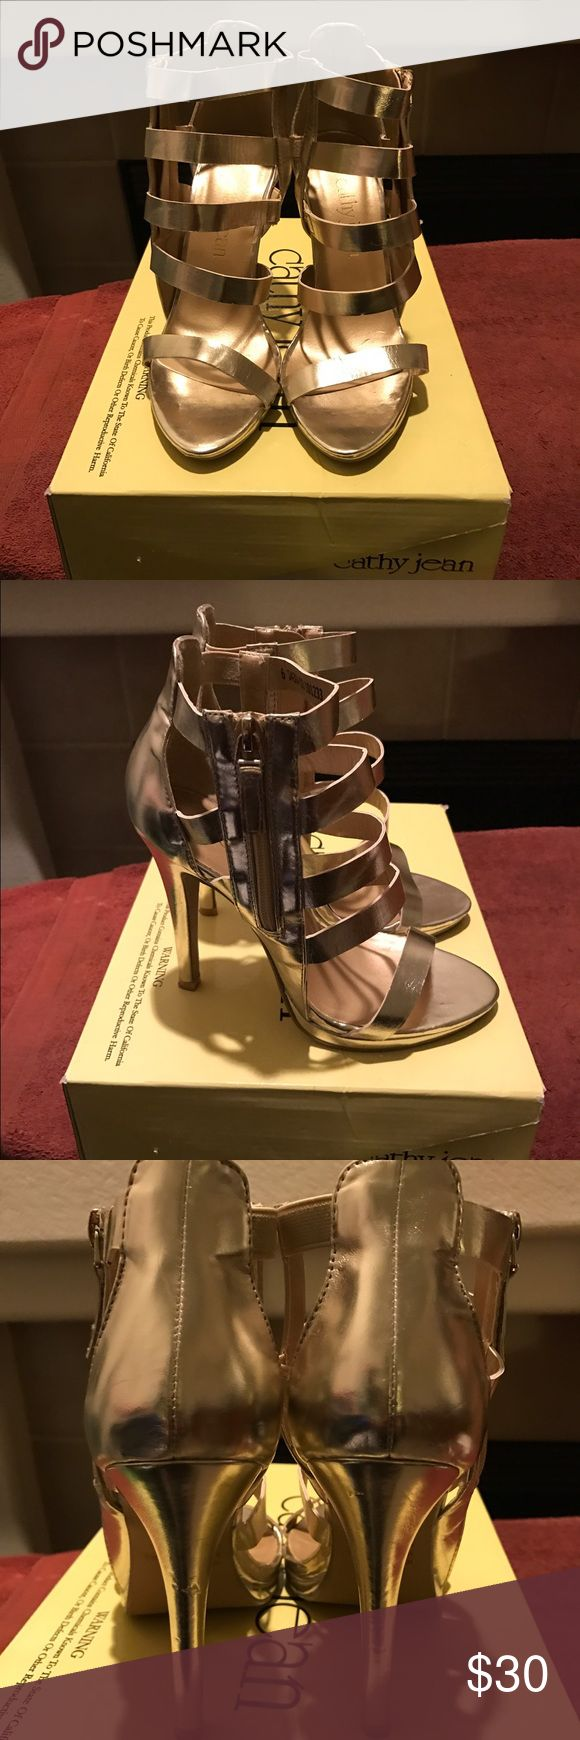 Gold Metallic Gladiator Sandal Heels So cute & sexy! Worn them once to a wedding. Heel measures about a little over 4 inches. Comfortable and easy to walk in. Same day ship if sale completed by 4pm PST. Cathy Jean Shoes Heels